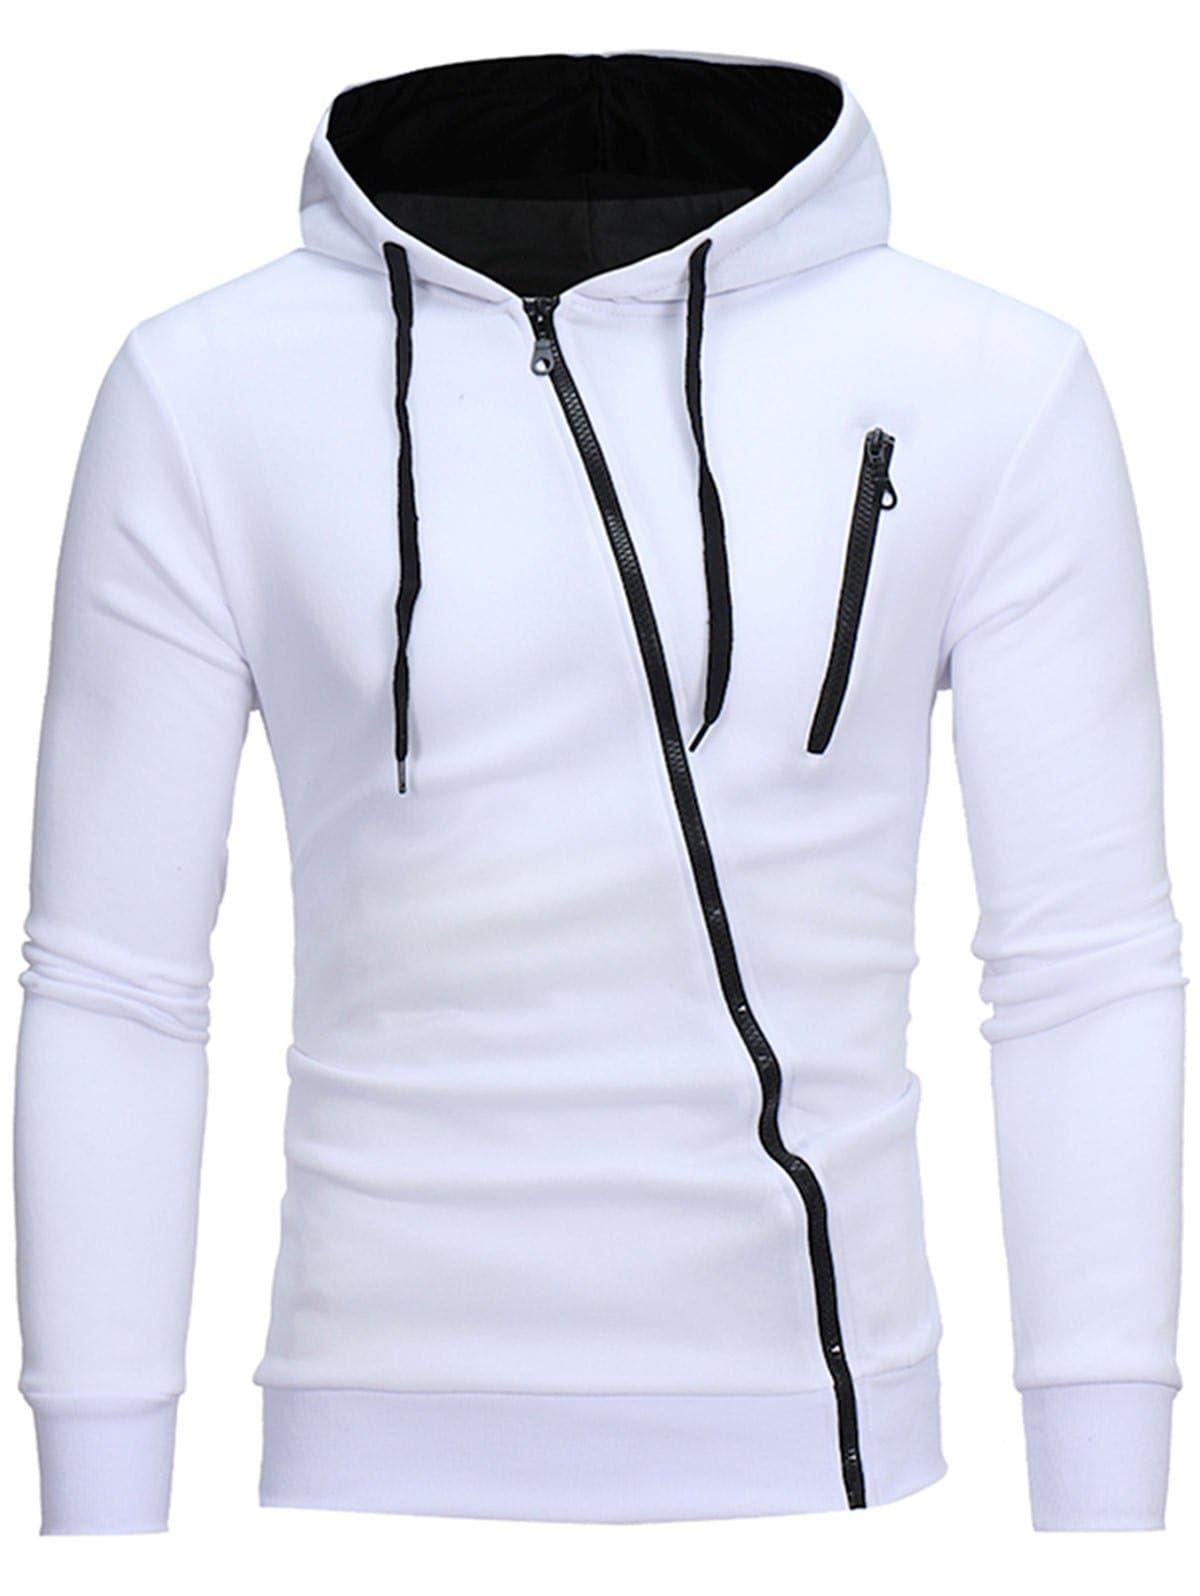 Men's Clothing Brand 2018 Hoodie Oblique Zipper Solid Color Hoodies Men Fashion Tracksuit Male Sweatshirt Hoody Mens Purpose Tour Xxxl With The Most Up-To-Date Equipment And Techniques